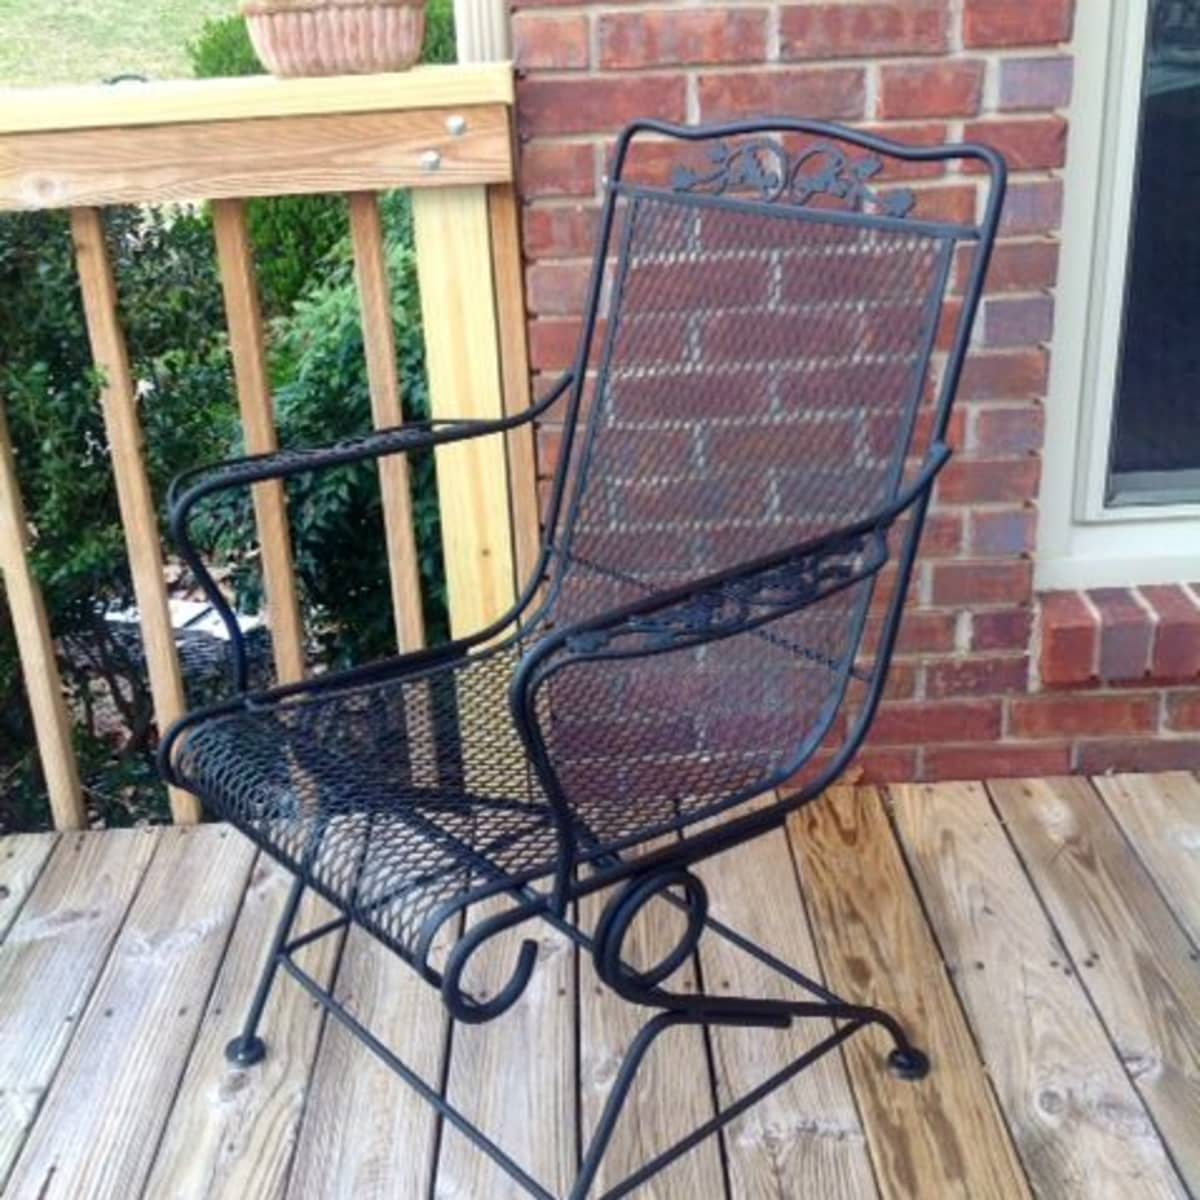 Diy How To Paint A Vintage Wrought Iron Chair Dengarden Home And Garden